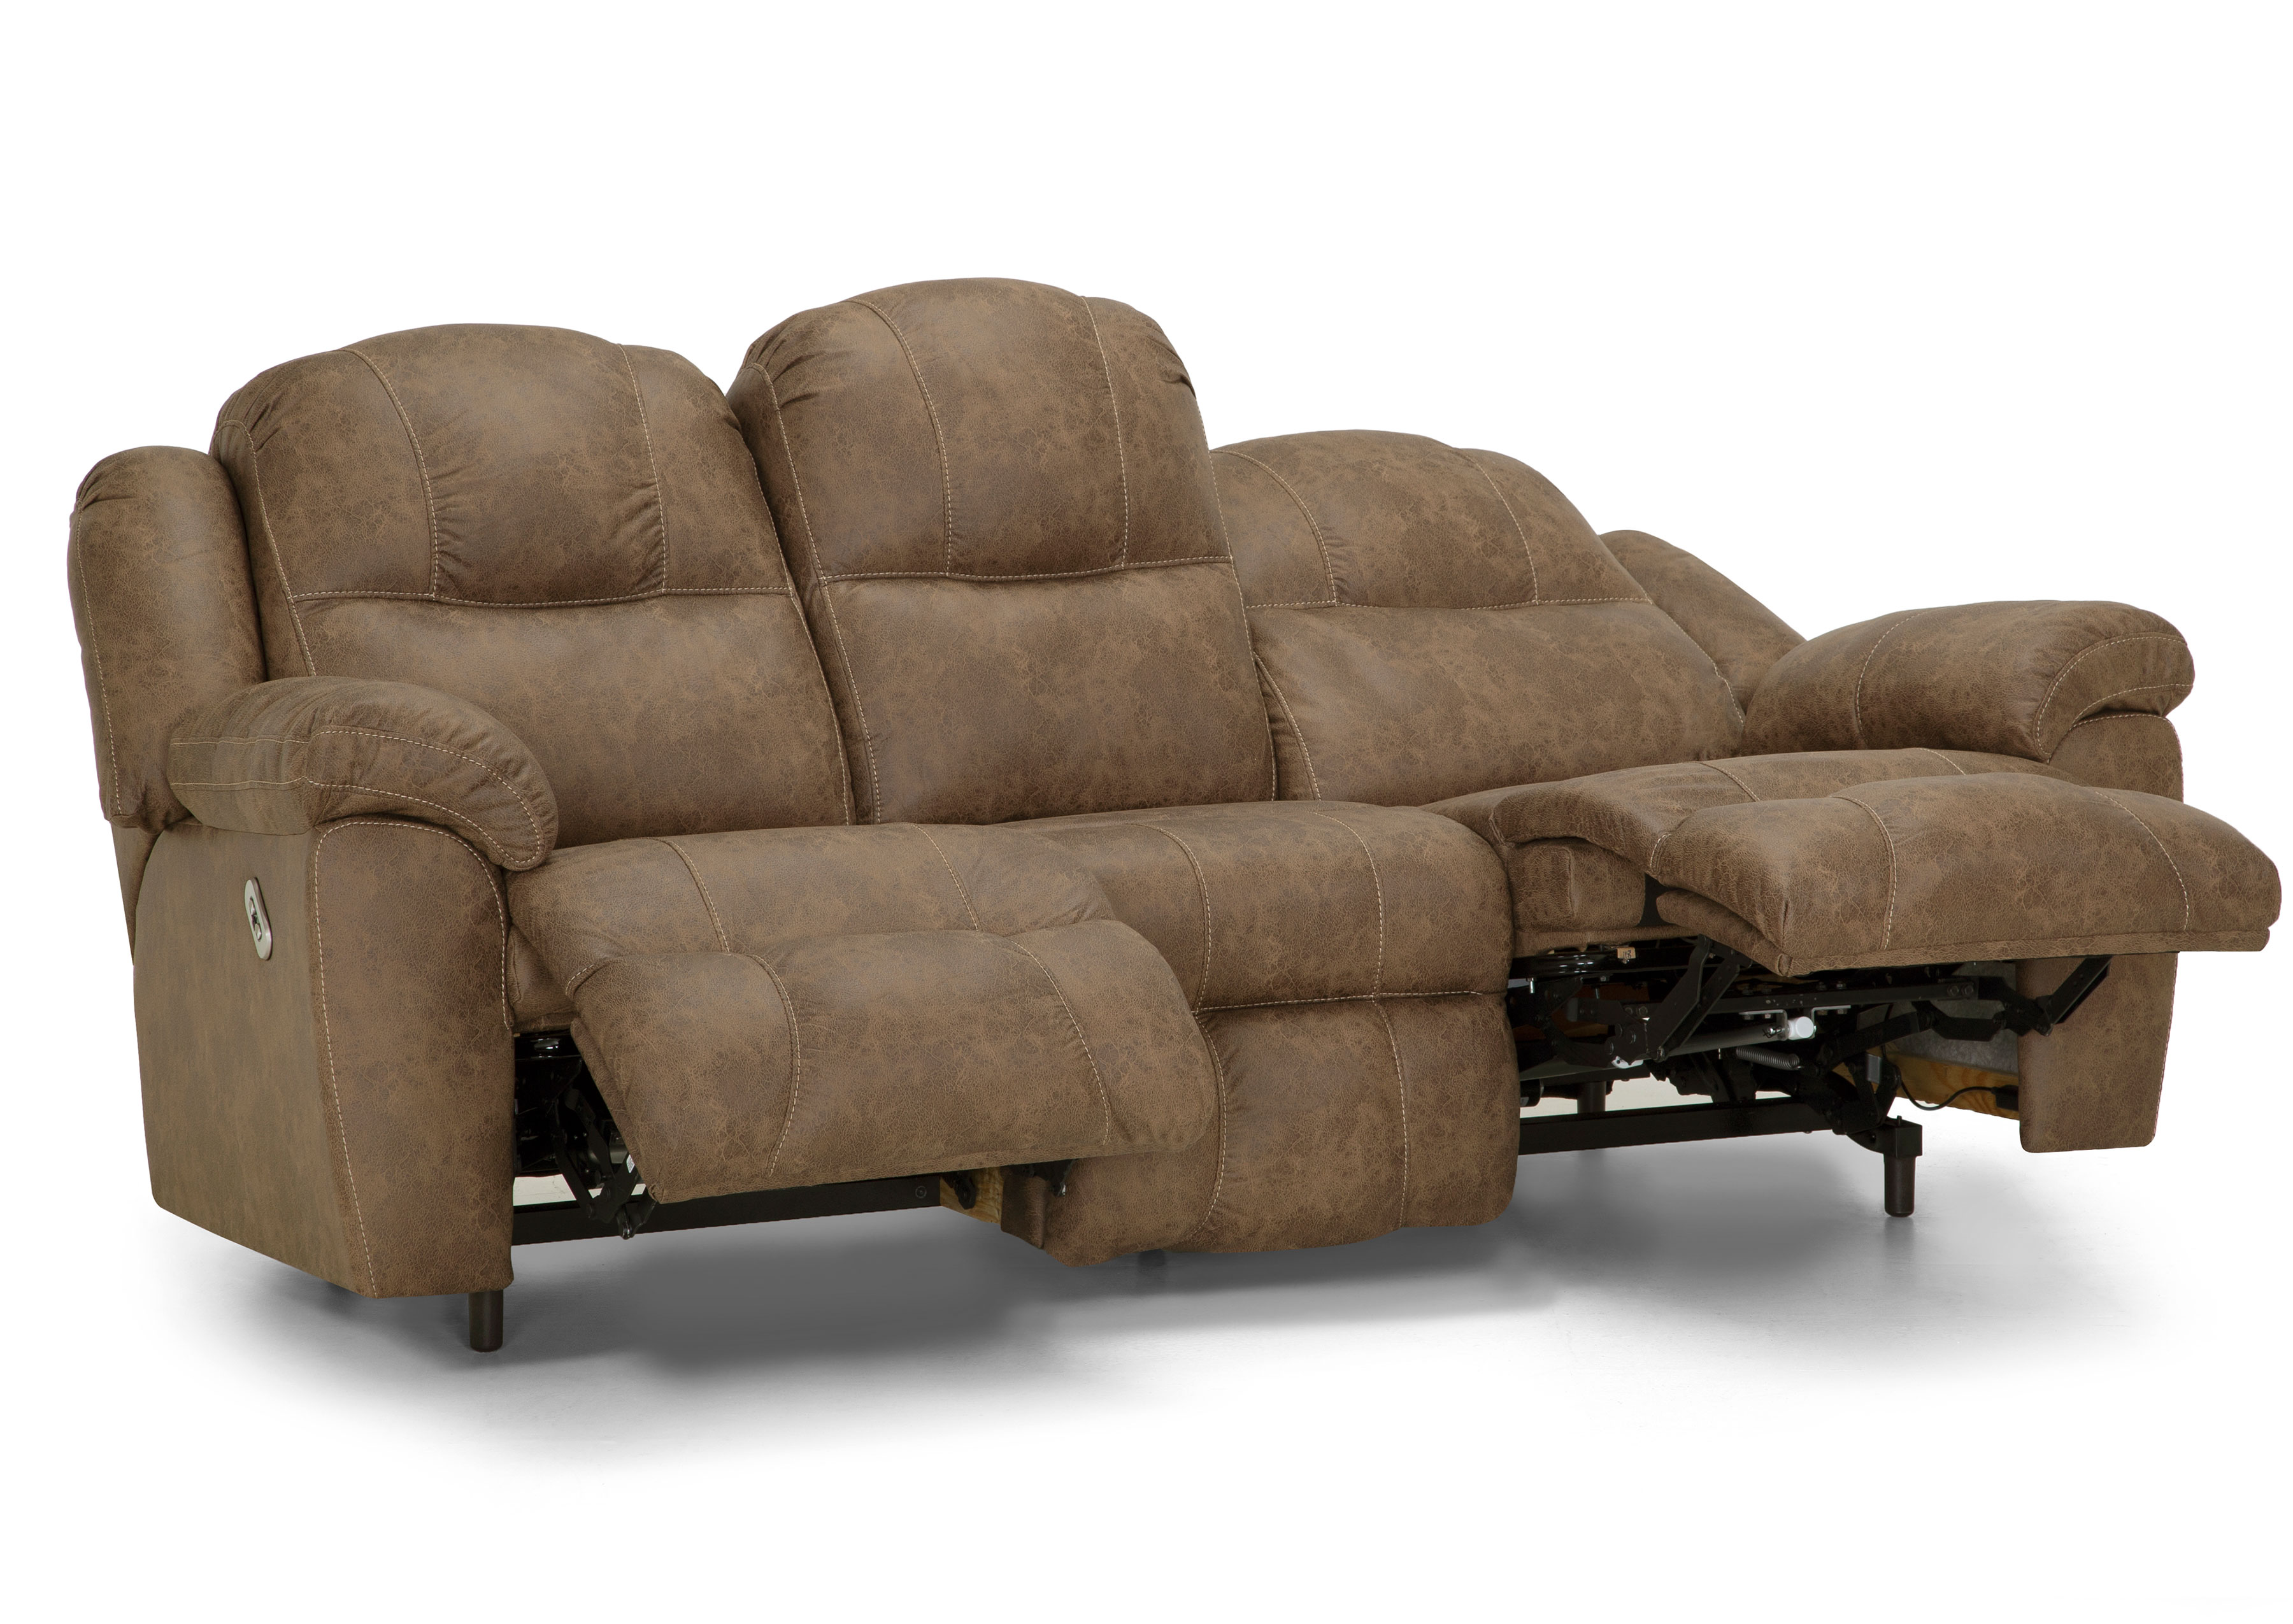 Awesome Victory 792 Reclining Sofa 92 Sofas And Sectionals Gmtry Best Dining Table And Chair Ideas Images Gmtryco